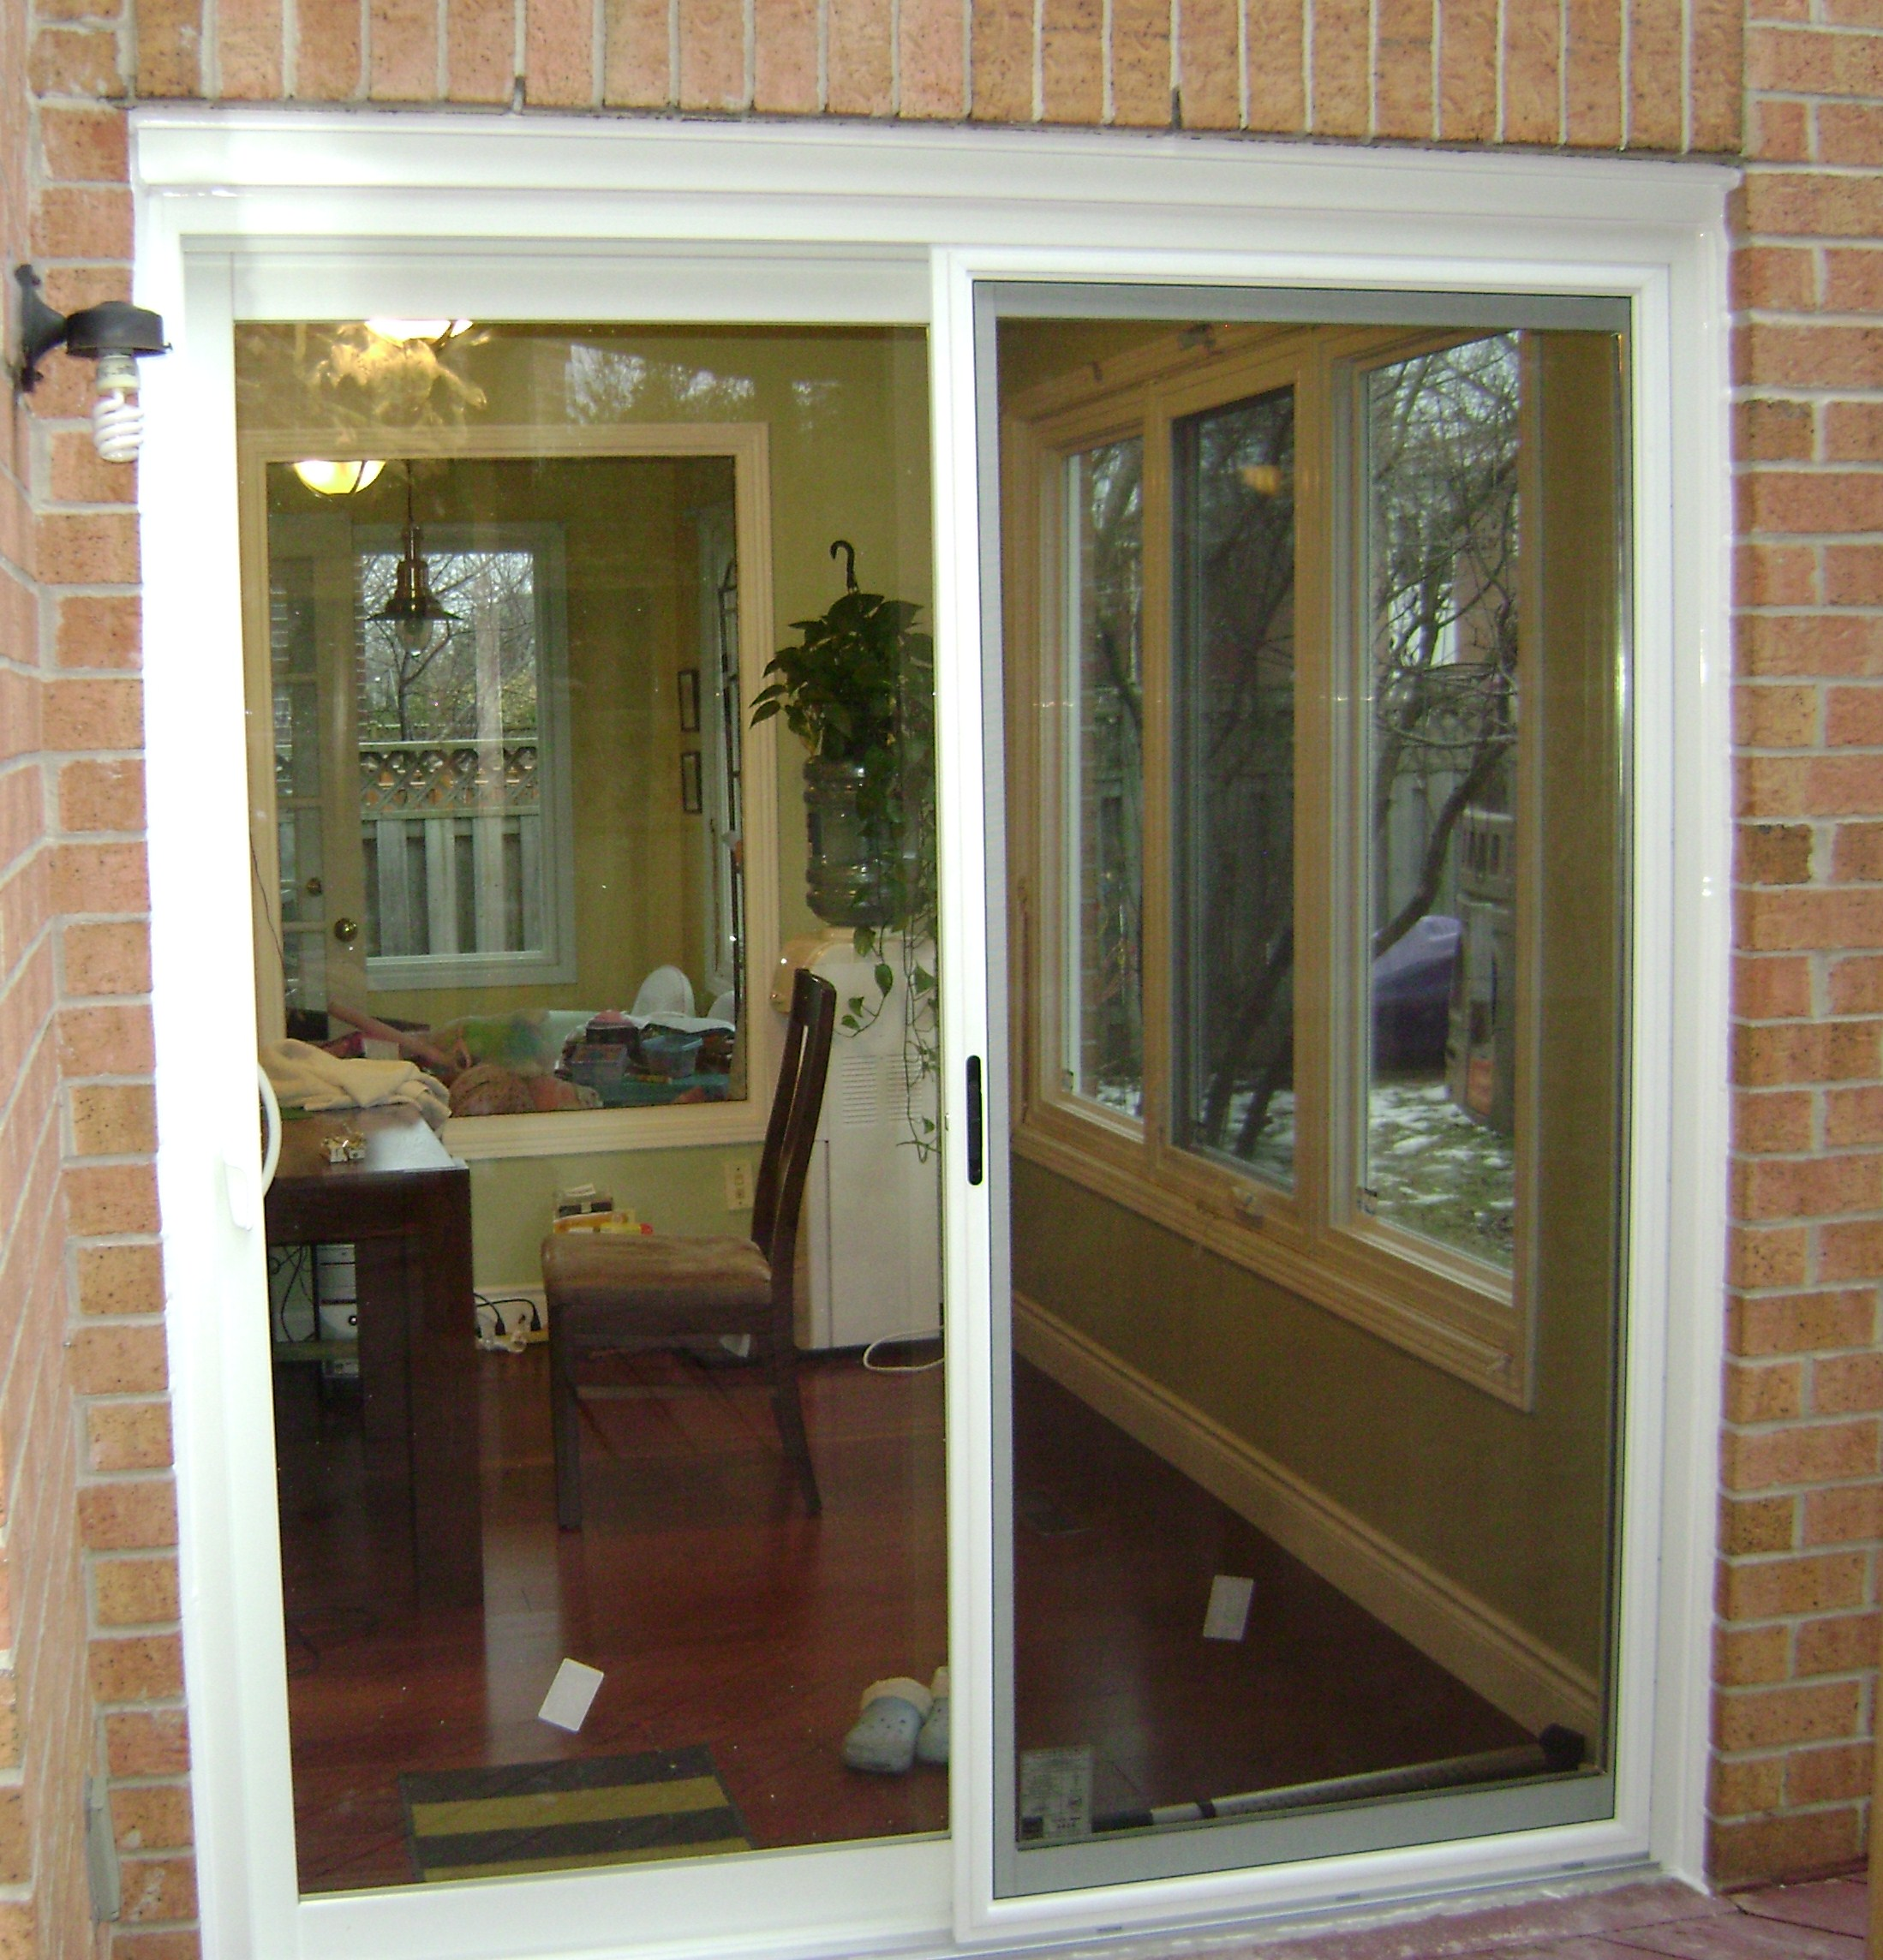 doors handballtunisie amazing info sliding org btca door designs french with fiberglass patio l examples blinds